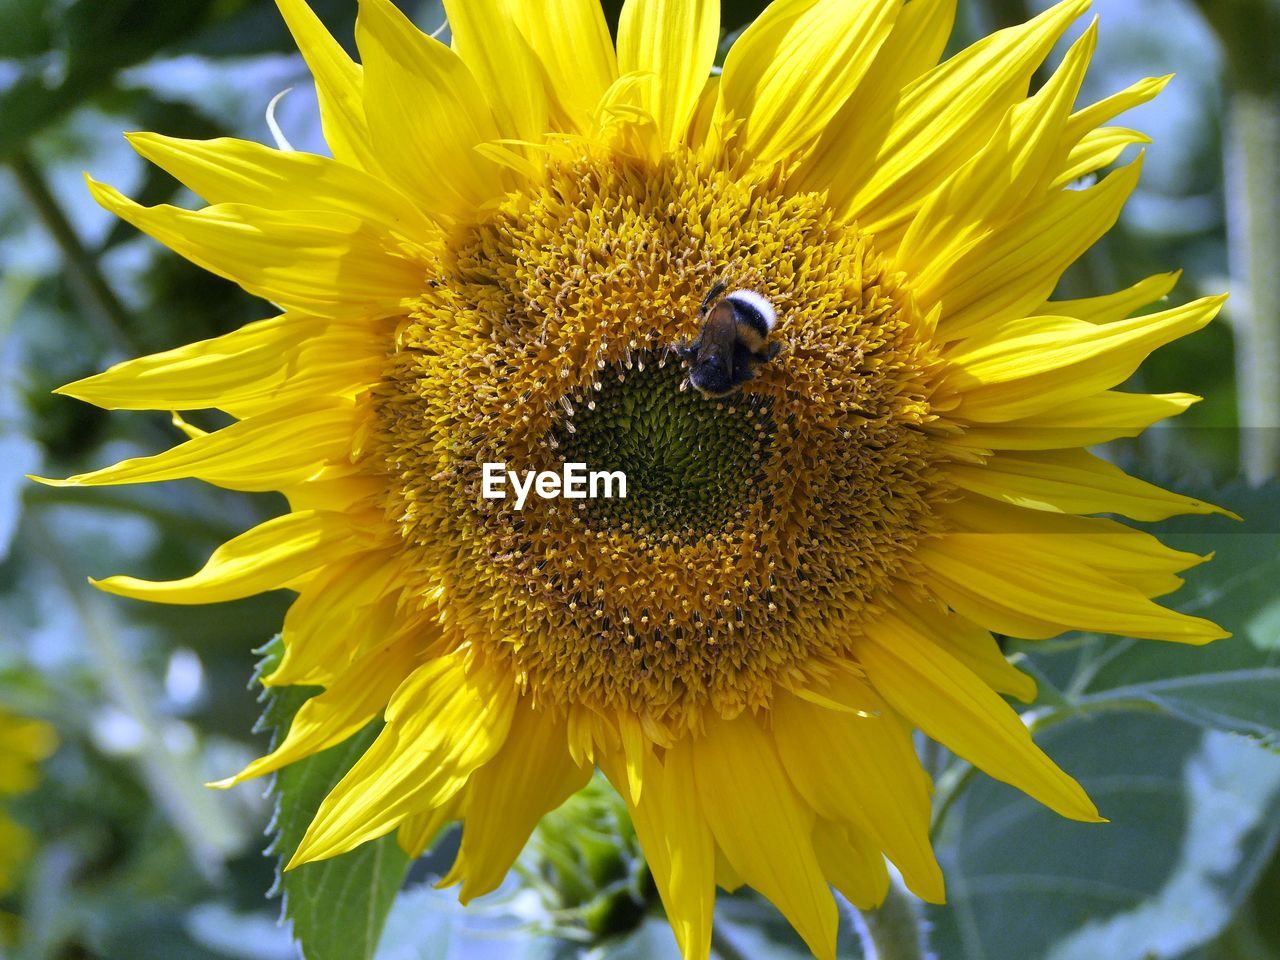 High Angle View Of Insect Pollinating On Sunflower